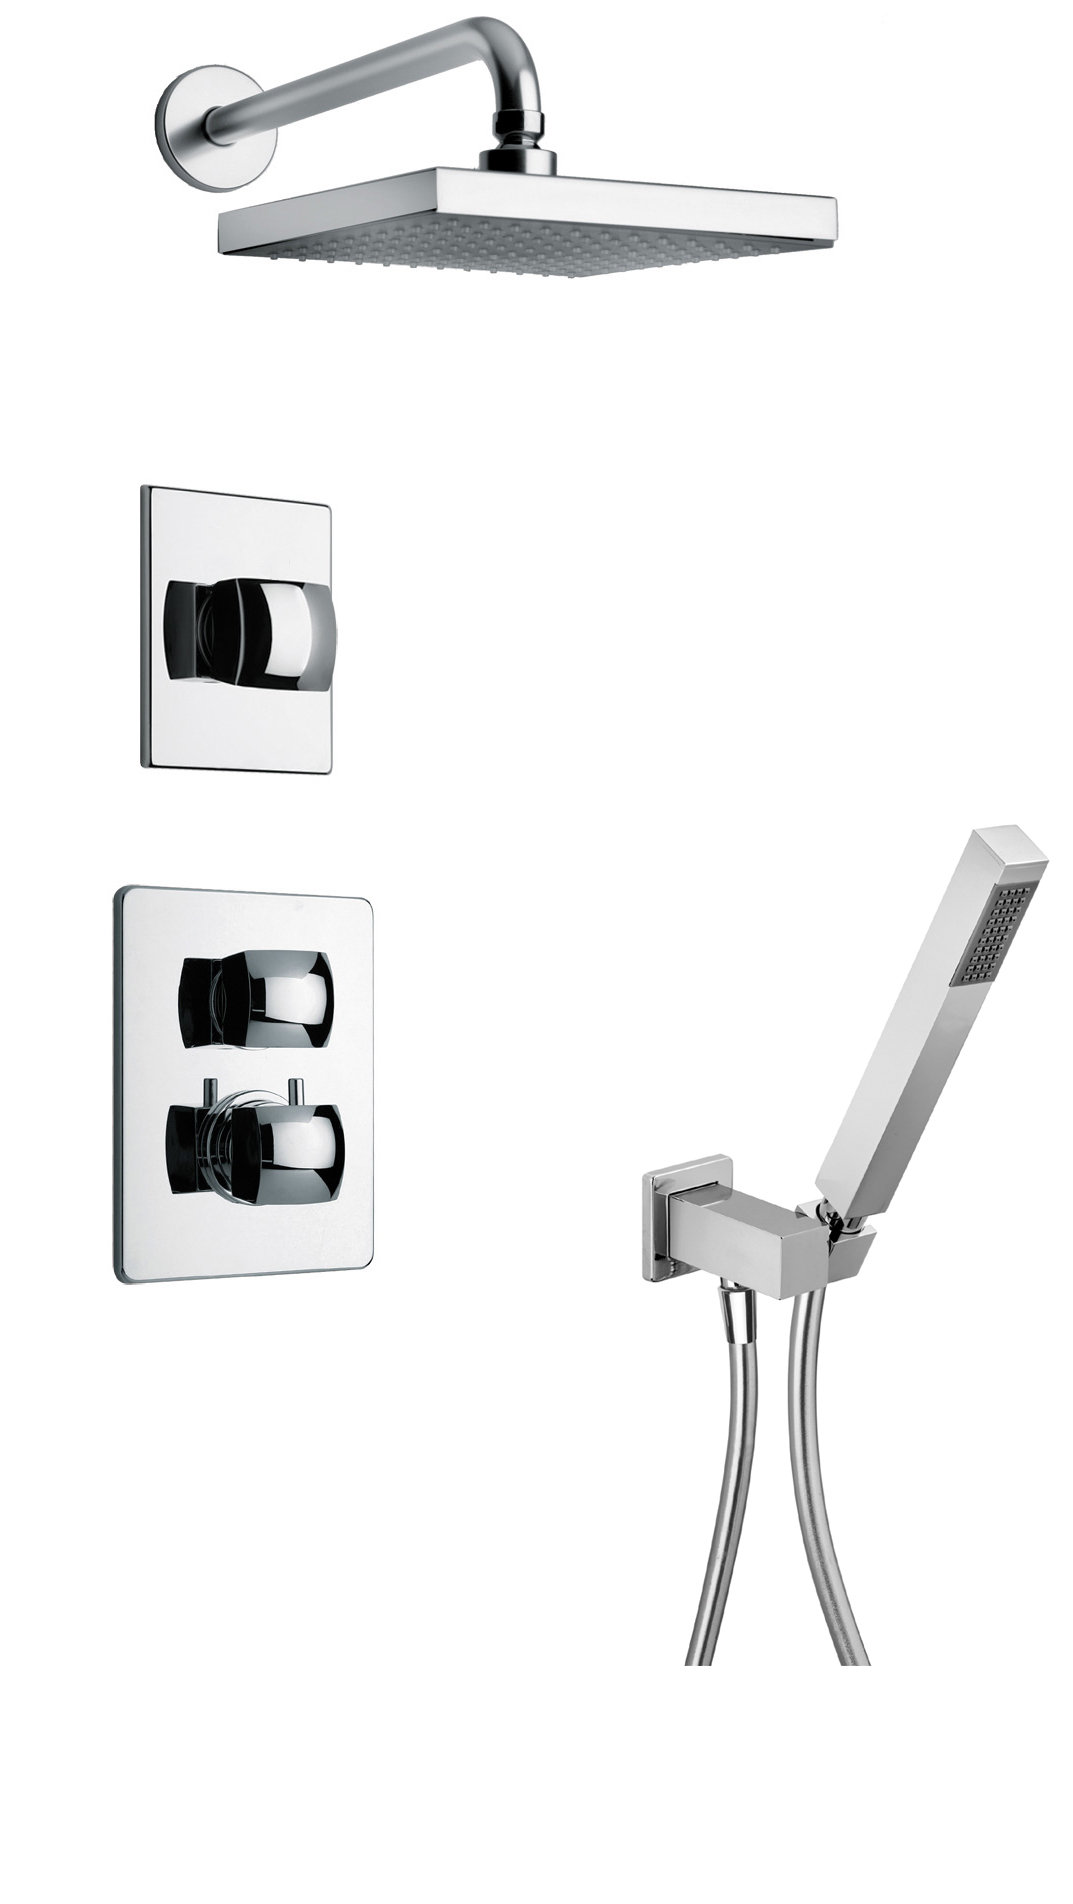 "Thermostatic Shower With 3/4"" Ceramic Disc Volume Control, 3-Way Diverter, Hand-Shower in Chrome Finish"